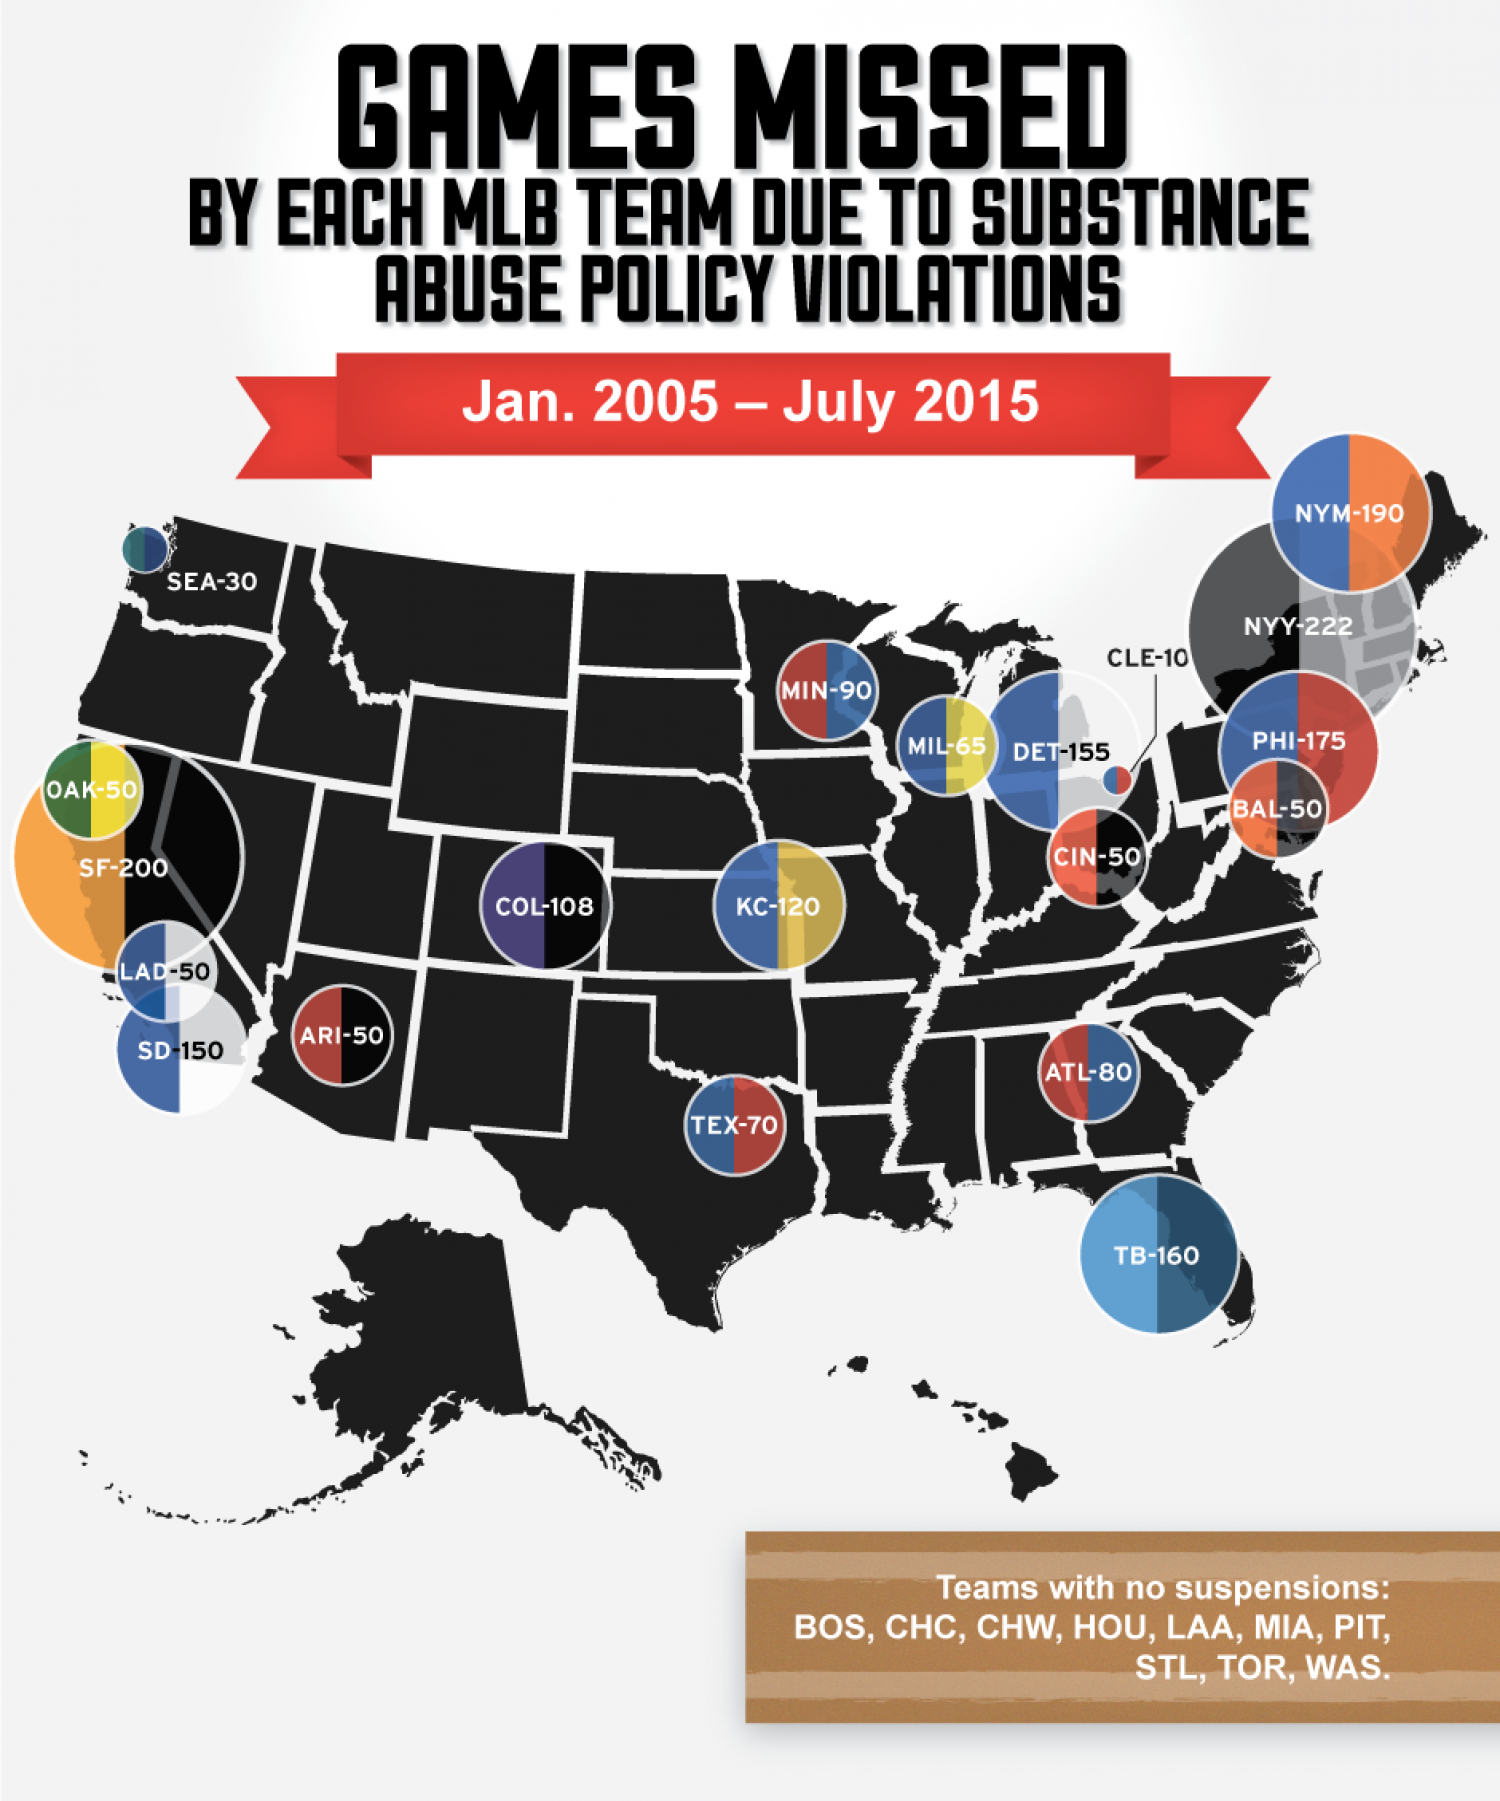 Games Missed By Each MLB Team Due To Substance Abuse Policy Violations Infographic